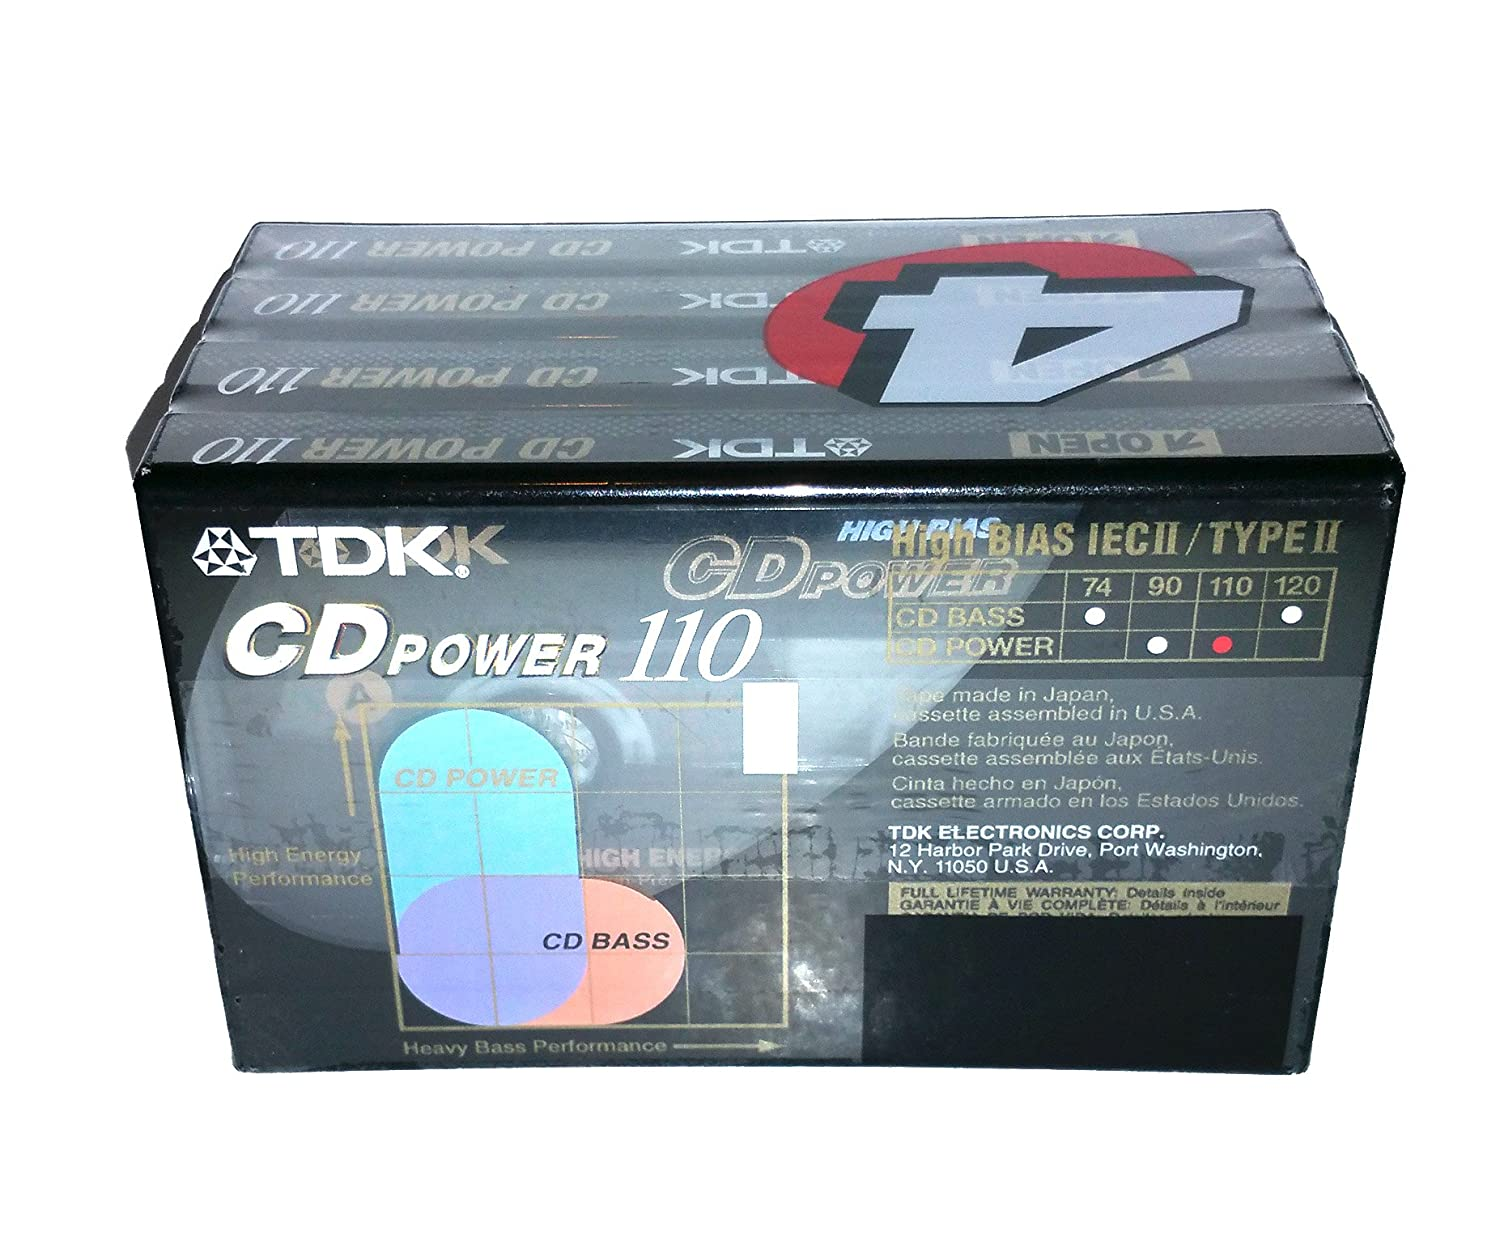 Amazon.com: 4-pack TDK Cd Power 110 Type Ii (Cro2) High Bias New Blank Audio Cassette Tapes: Home Audio & Theater